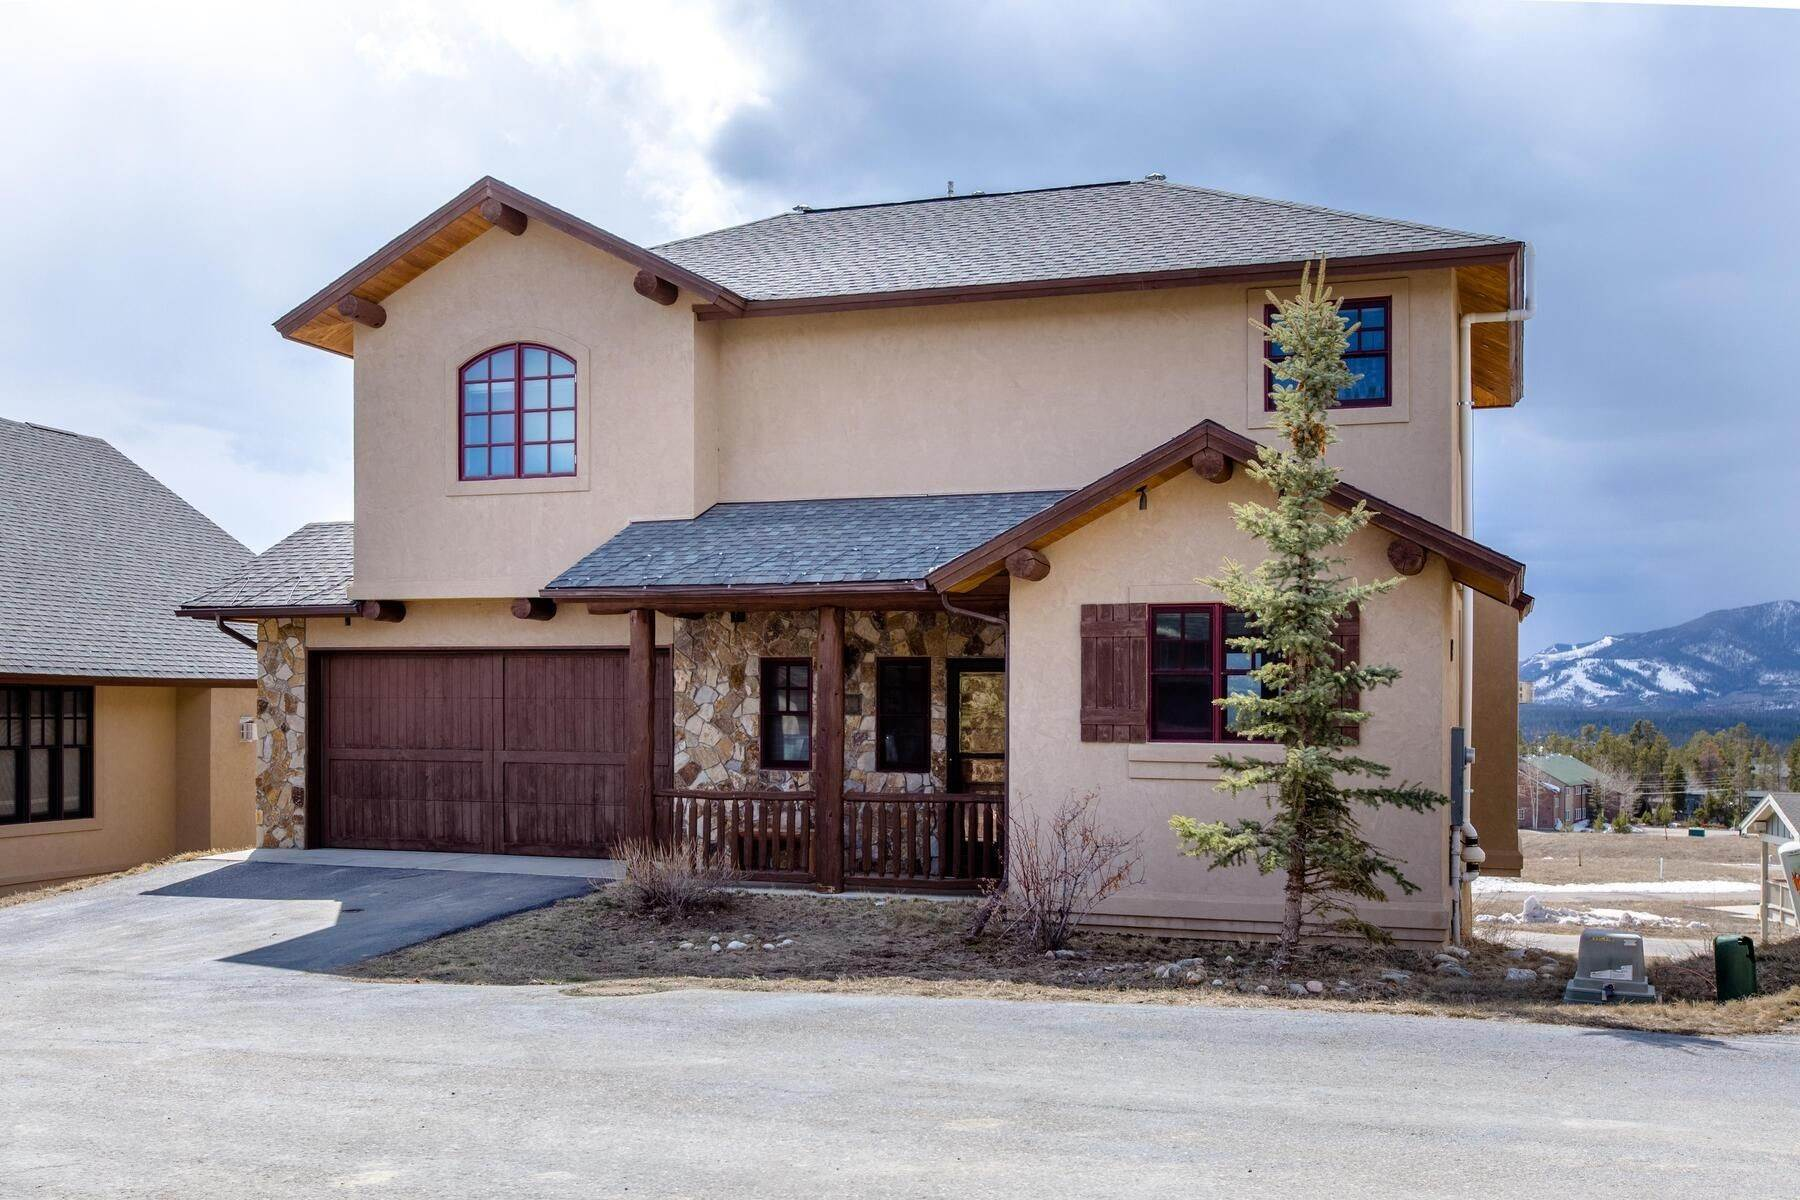 Single Family Homes for Sale at Enjoy the Mountain Lifestyle in this Fully Furnished Home! 410 Trappers Way Fraser, Colorado 80442 United States